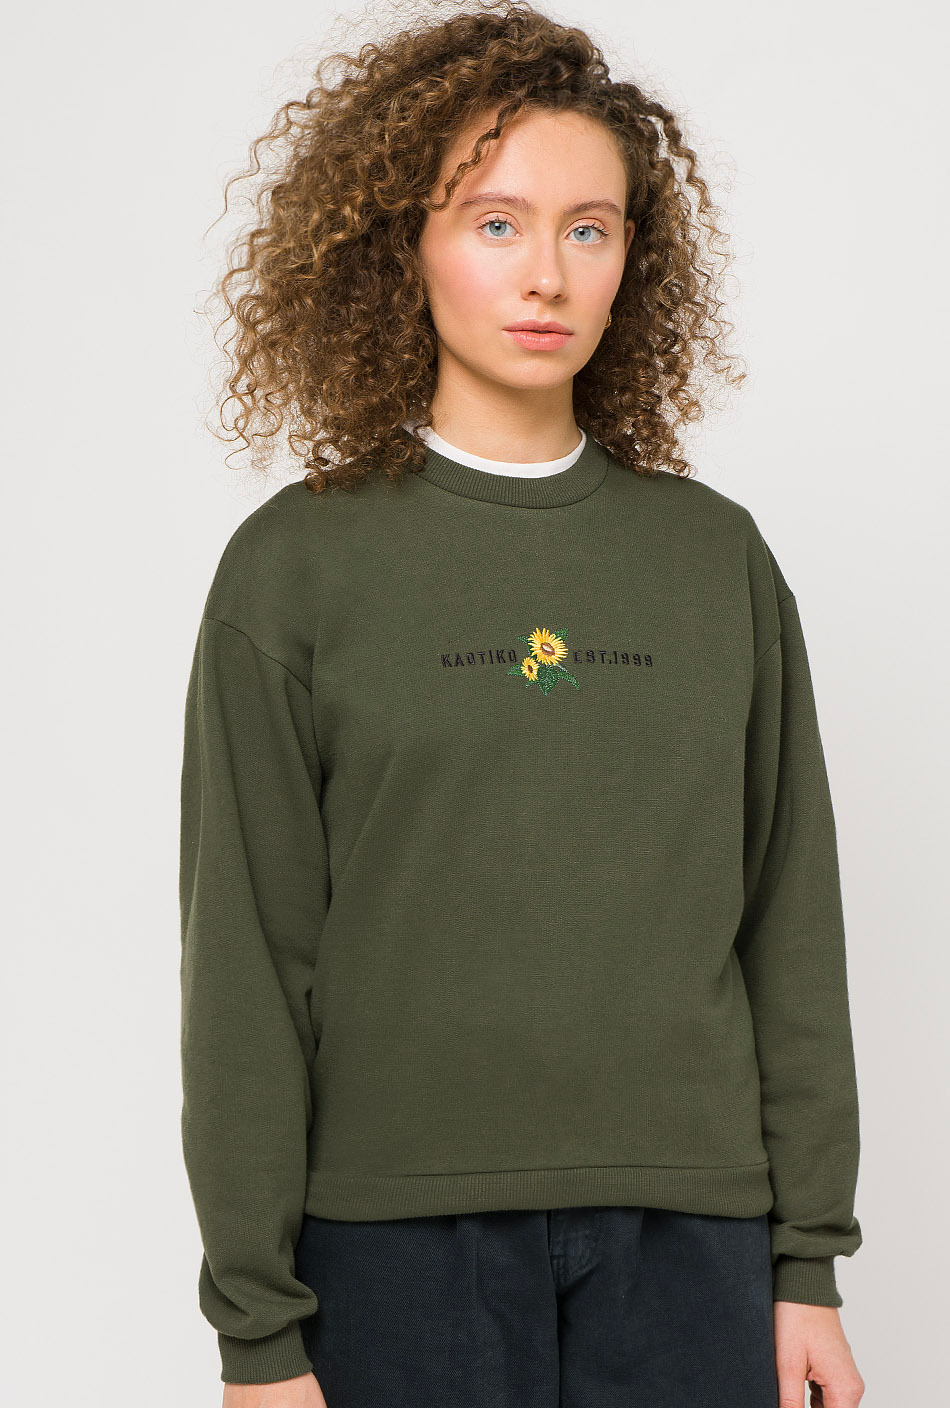 Sunflower Green Sweatshirt